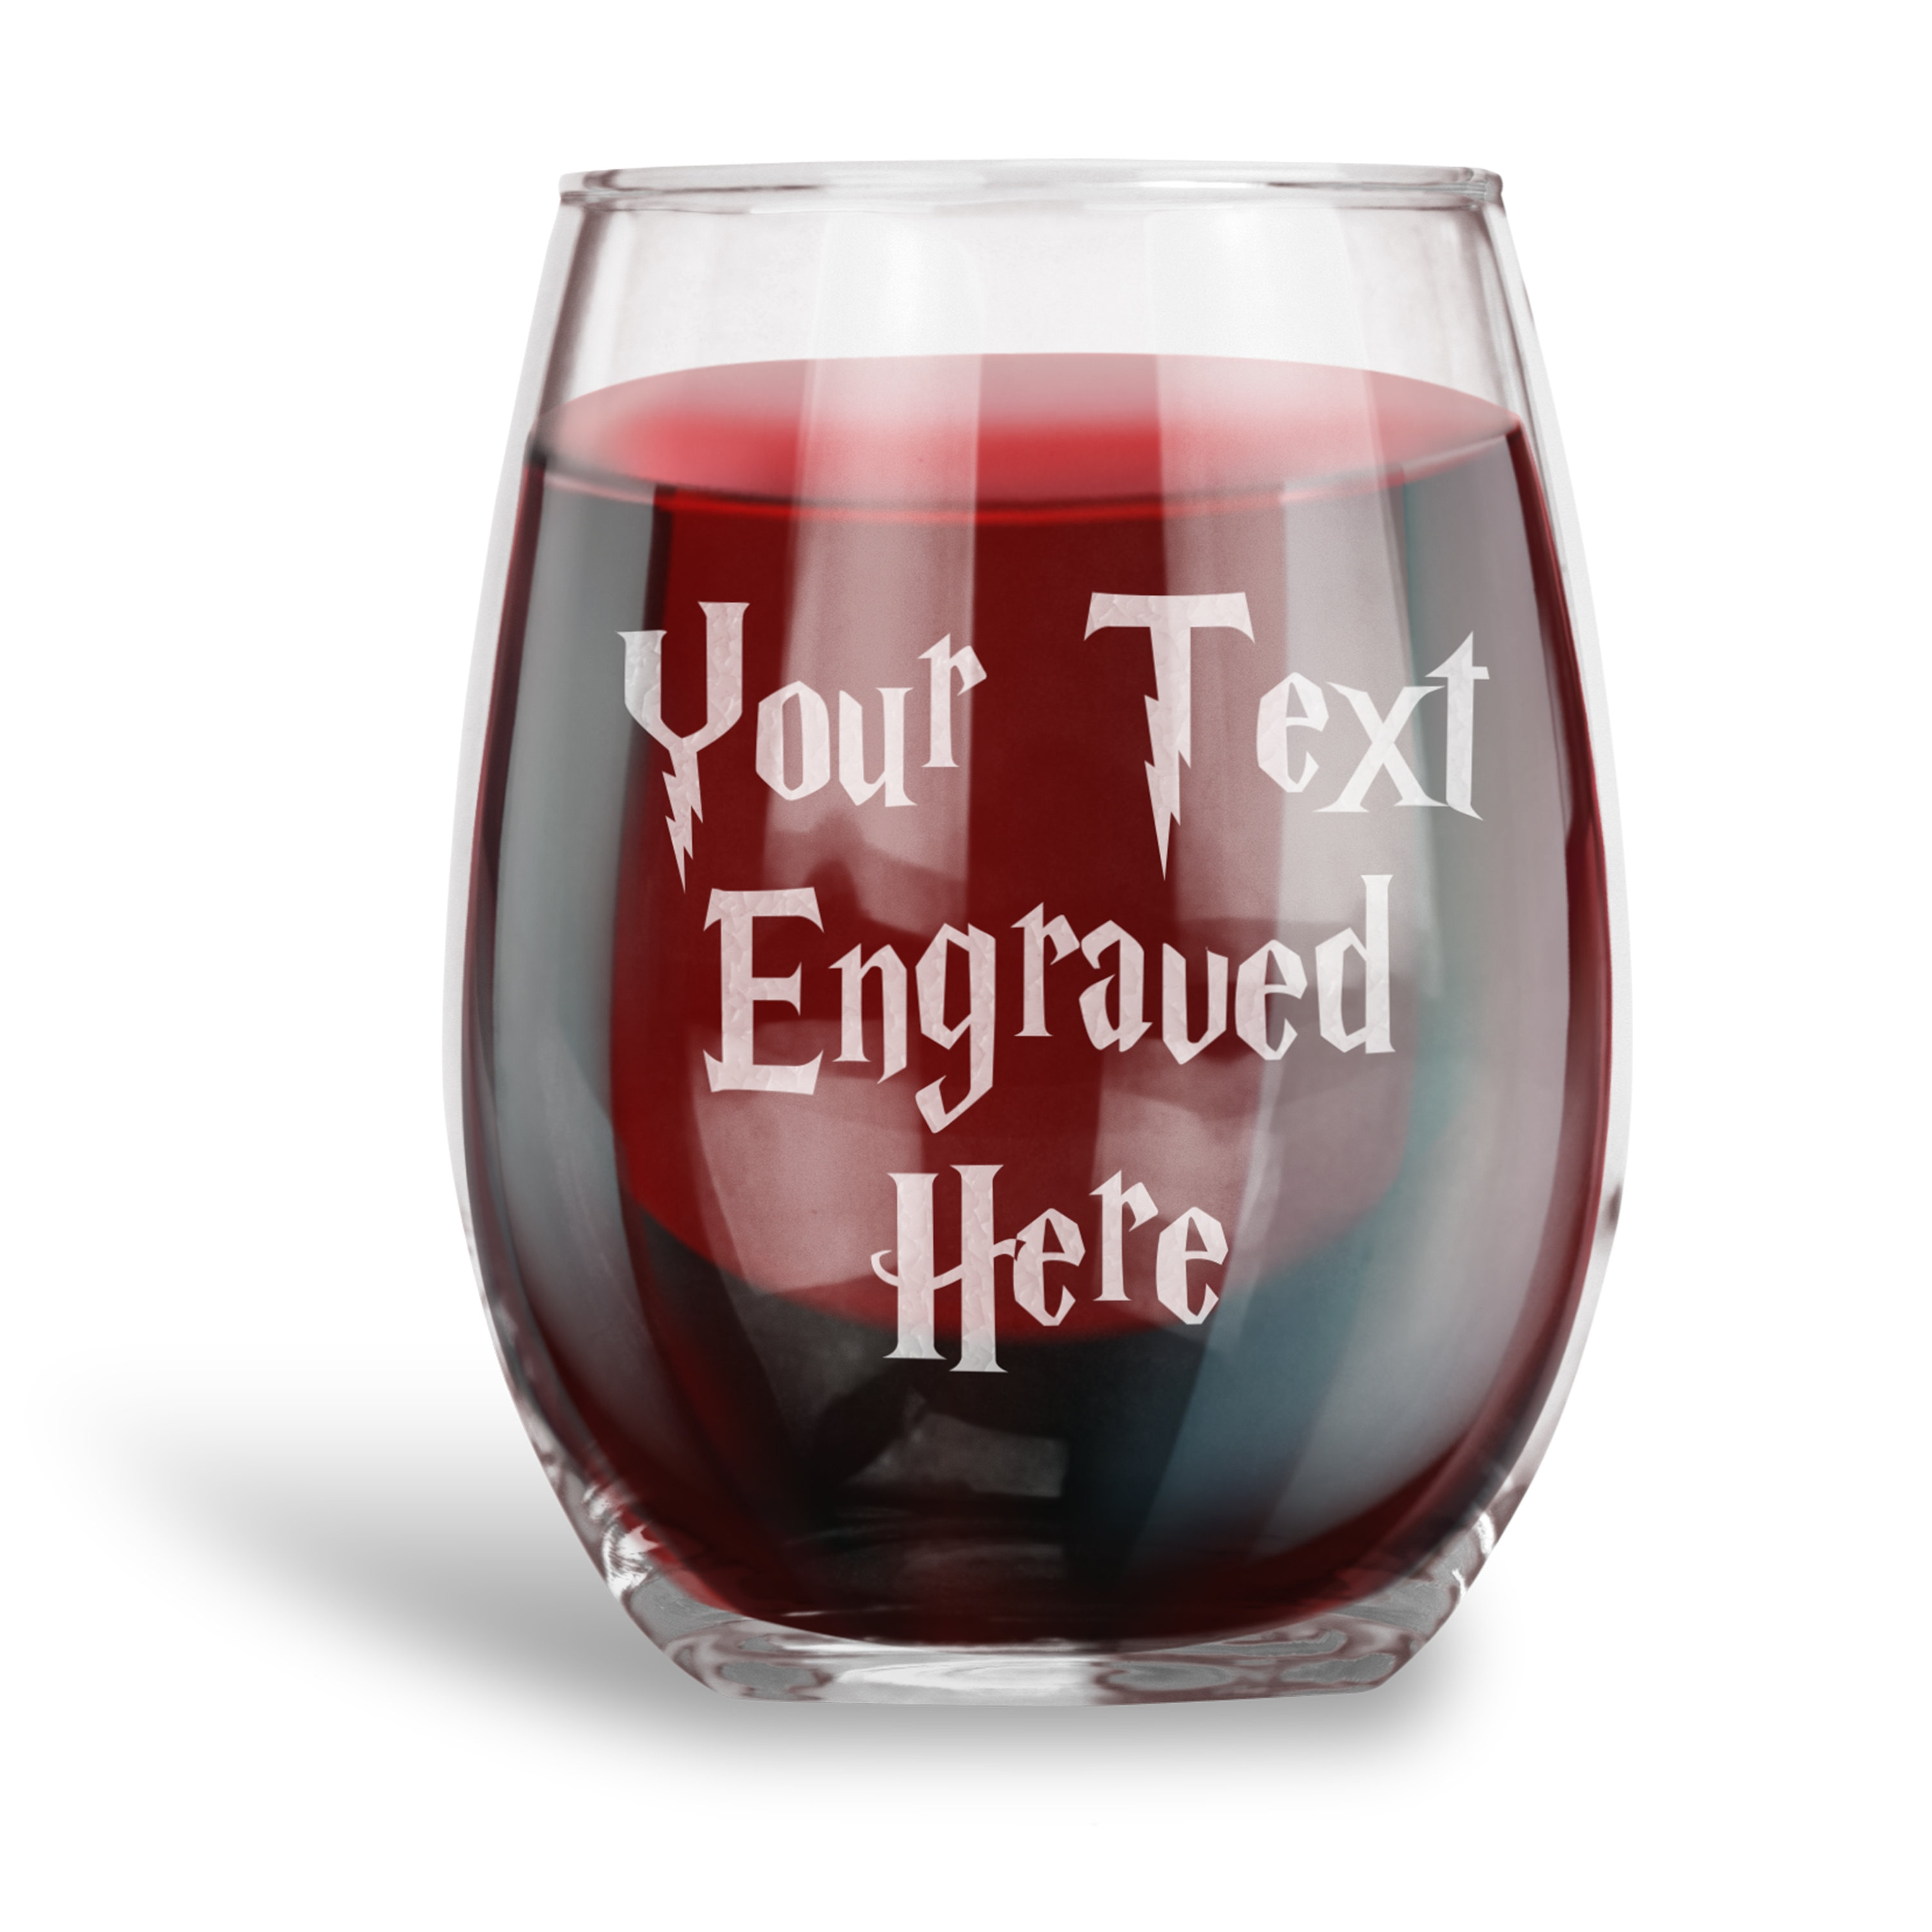 1f6f317f624 Personalized 15 oz. Stemless Wine Glass Engraved with Your Custom Text - Personalized  Gifts, Humor Drinkware, Funny Gift